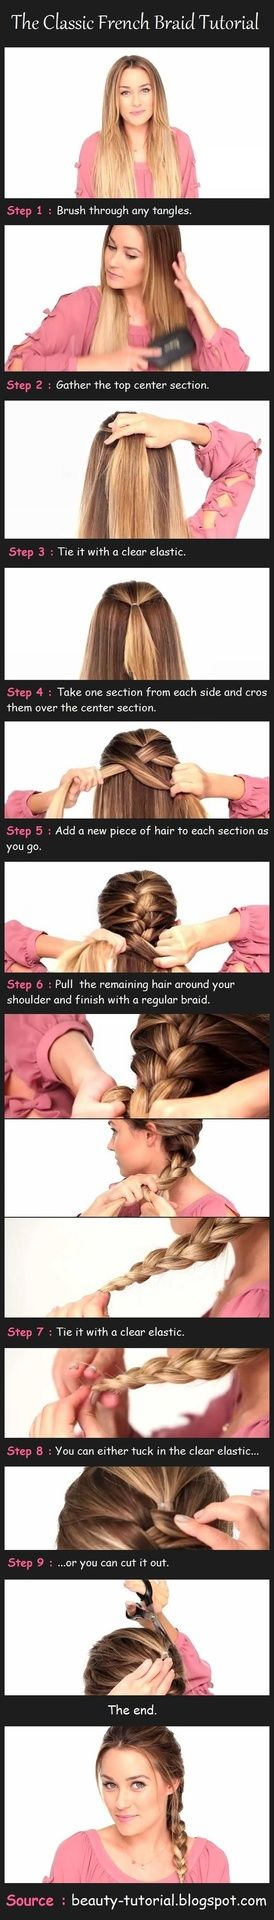 Classic French Braid Hairstyles, going to try doing this myself.